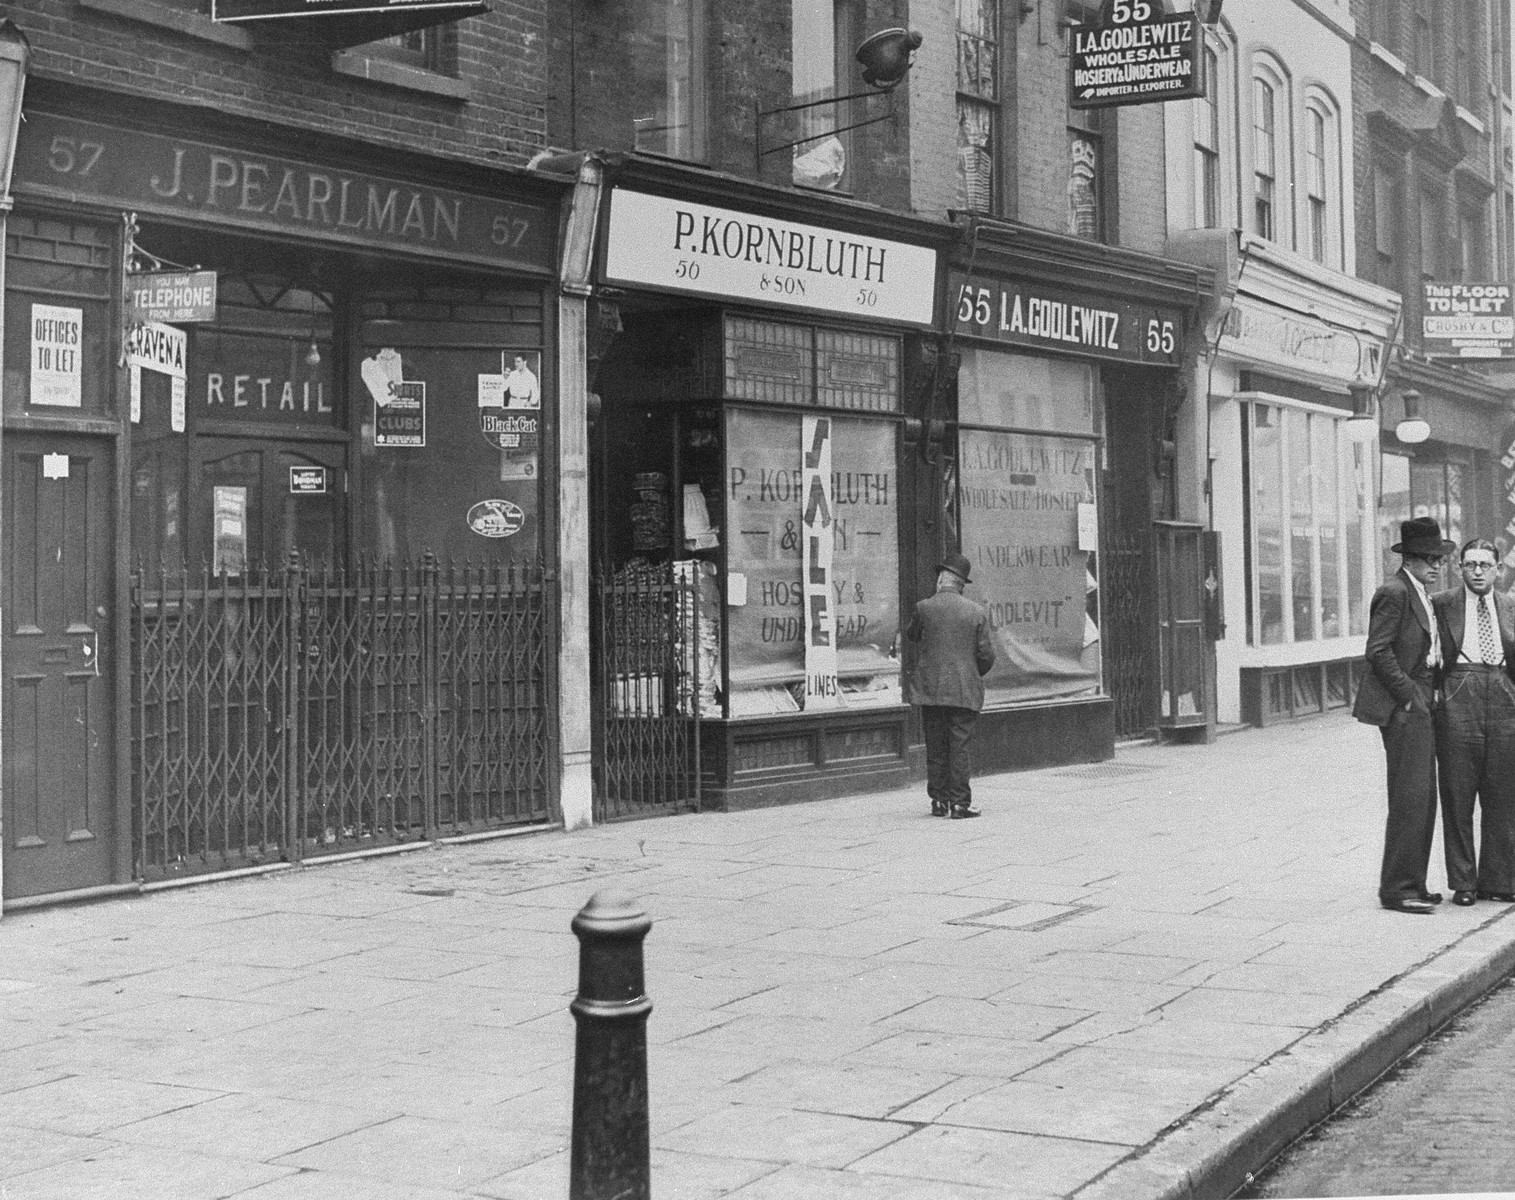 View of a street in Whitechapel where all the Jewish businesses remain closed to protest against the Nazi persecution of German Jewry.